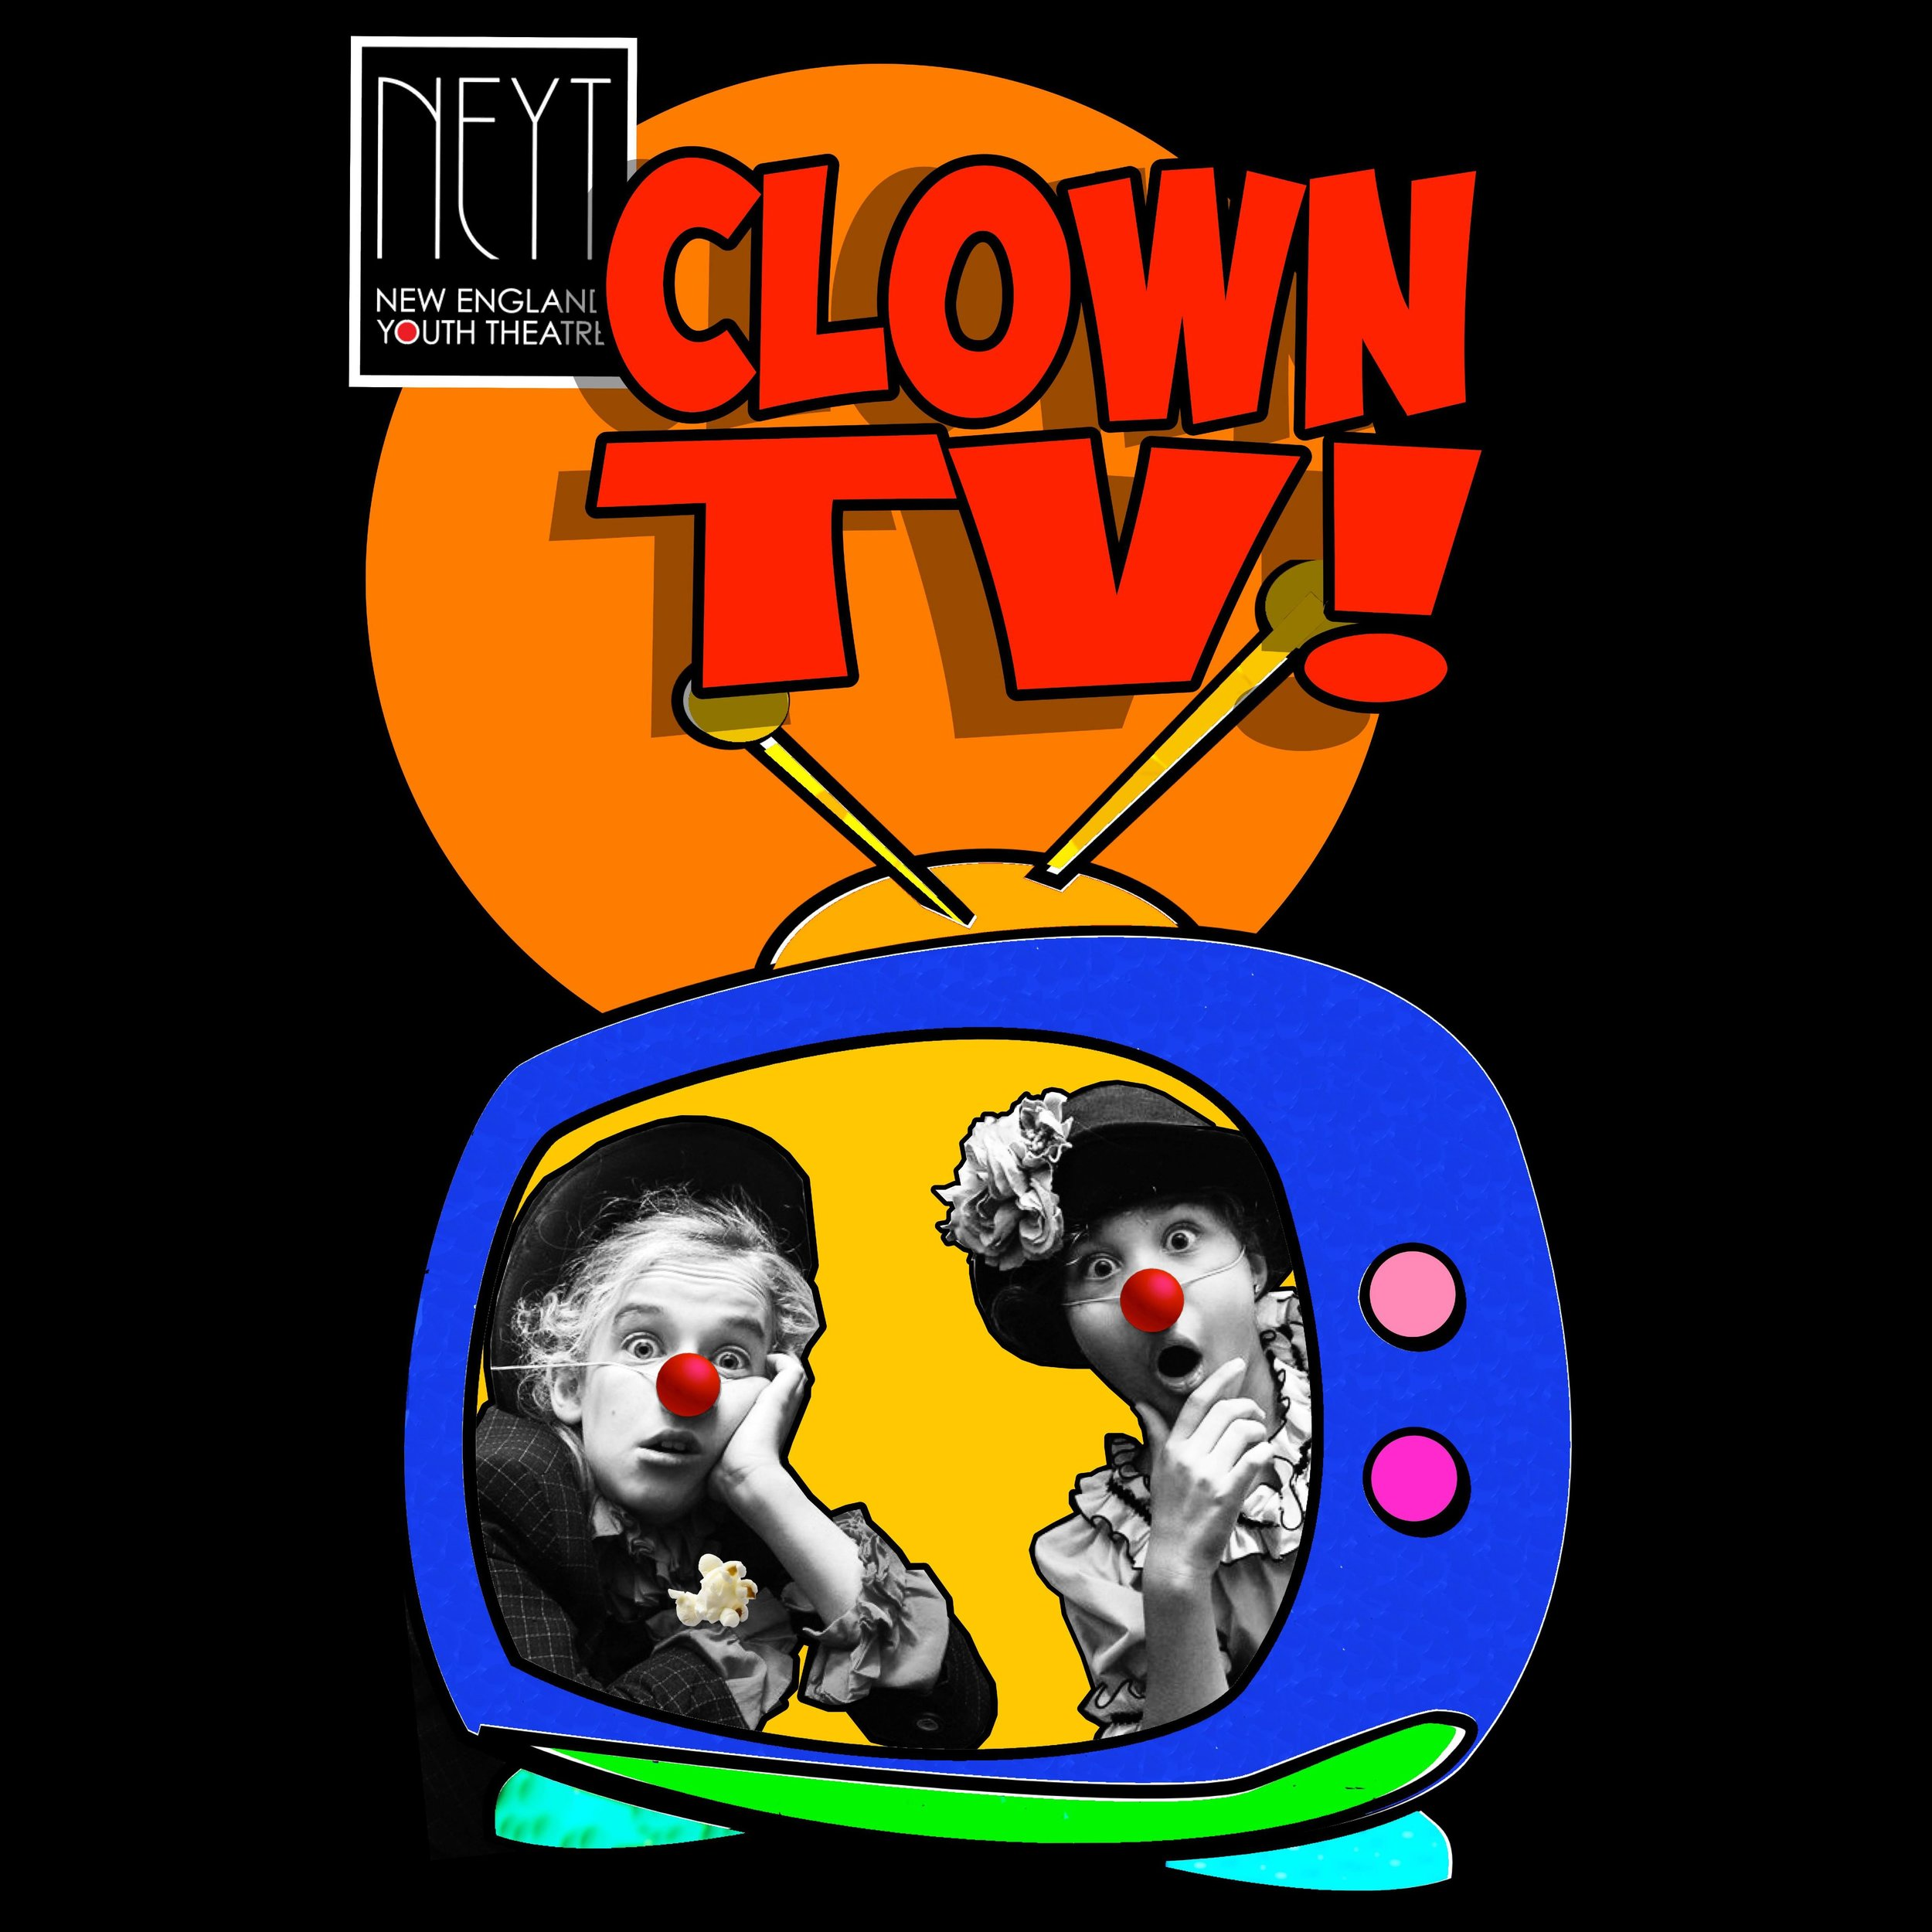 Clown TV! - Written & Directed by Doran HammThe clowns are back! Kick back with your popcorn and browse your favorite channels of our new and improved clown television.PERFORMANCES: November 1 - 9, 2019Sponsored by Foard Panel